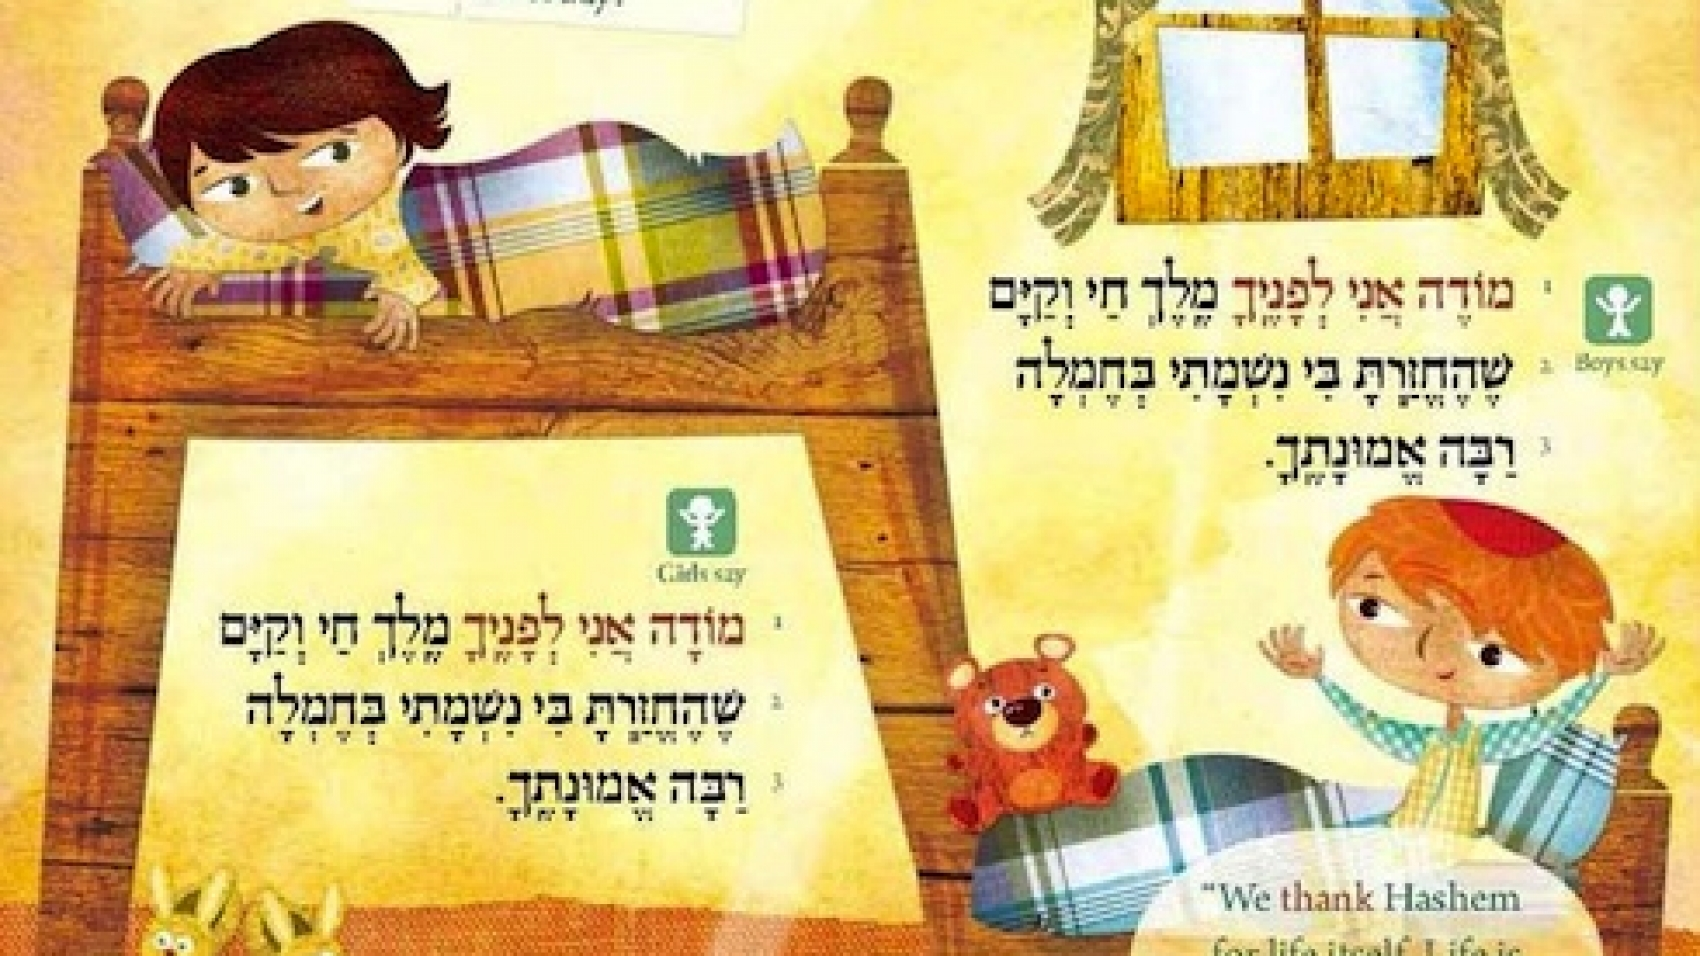 Modeh Ani koren children's siddur image courtesy koren publishers